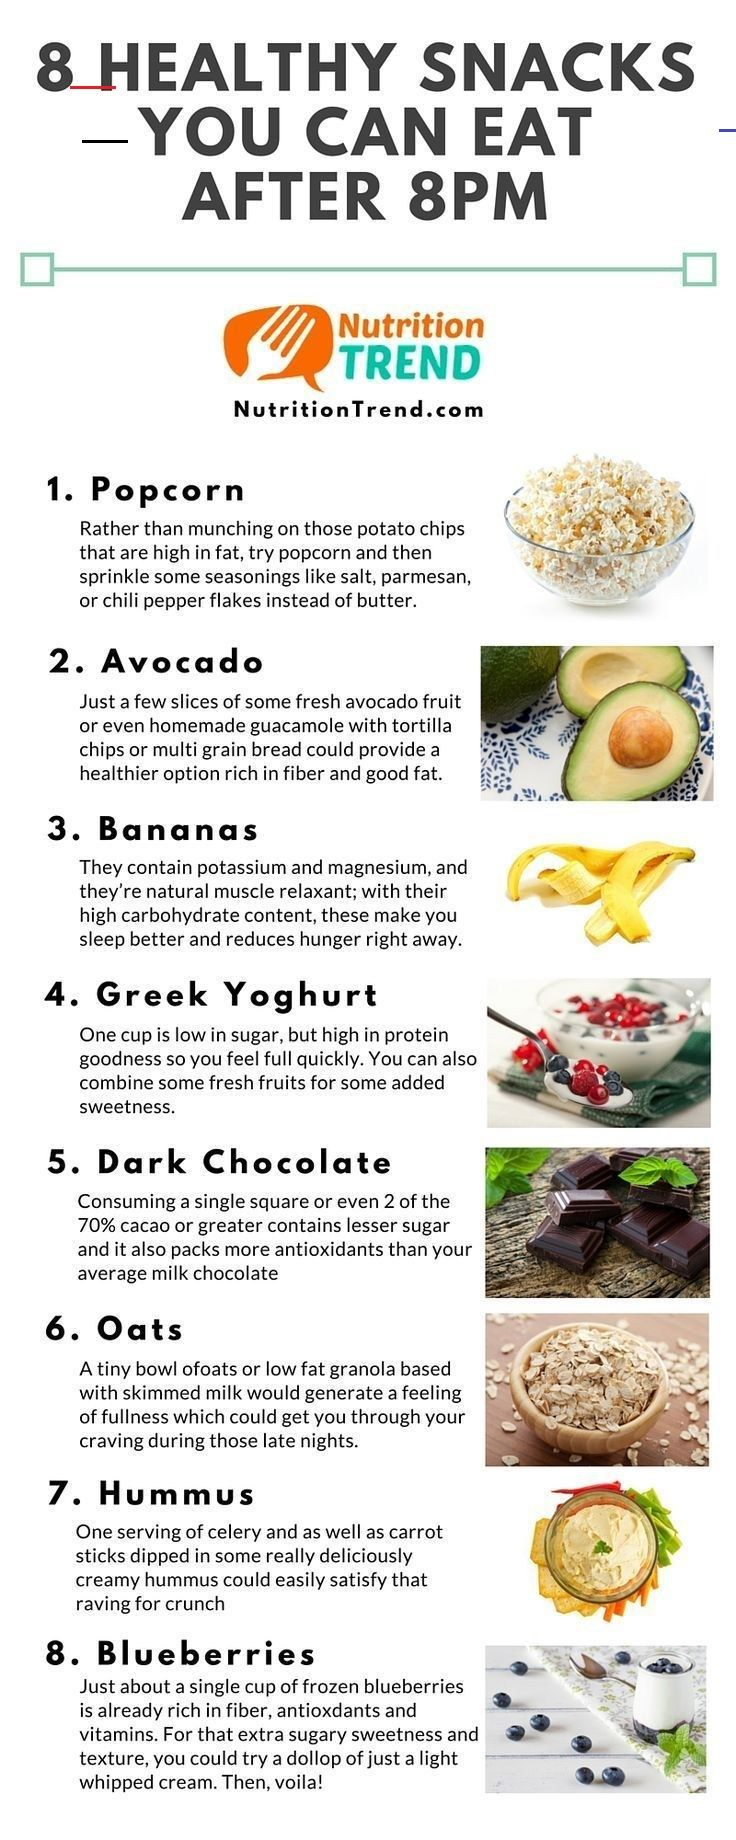 8 Healthy Snacks You Can Eat After 8 PM